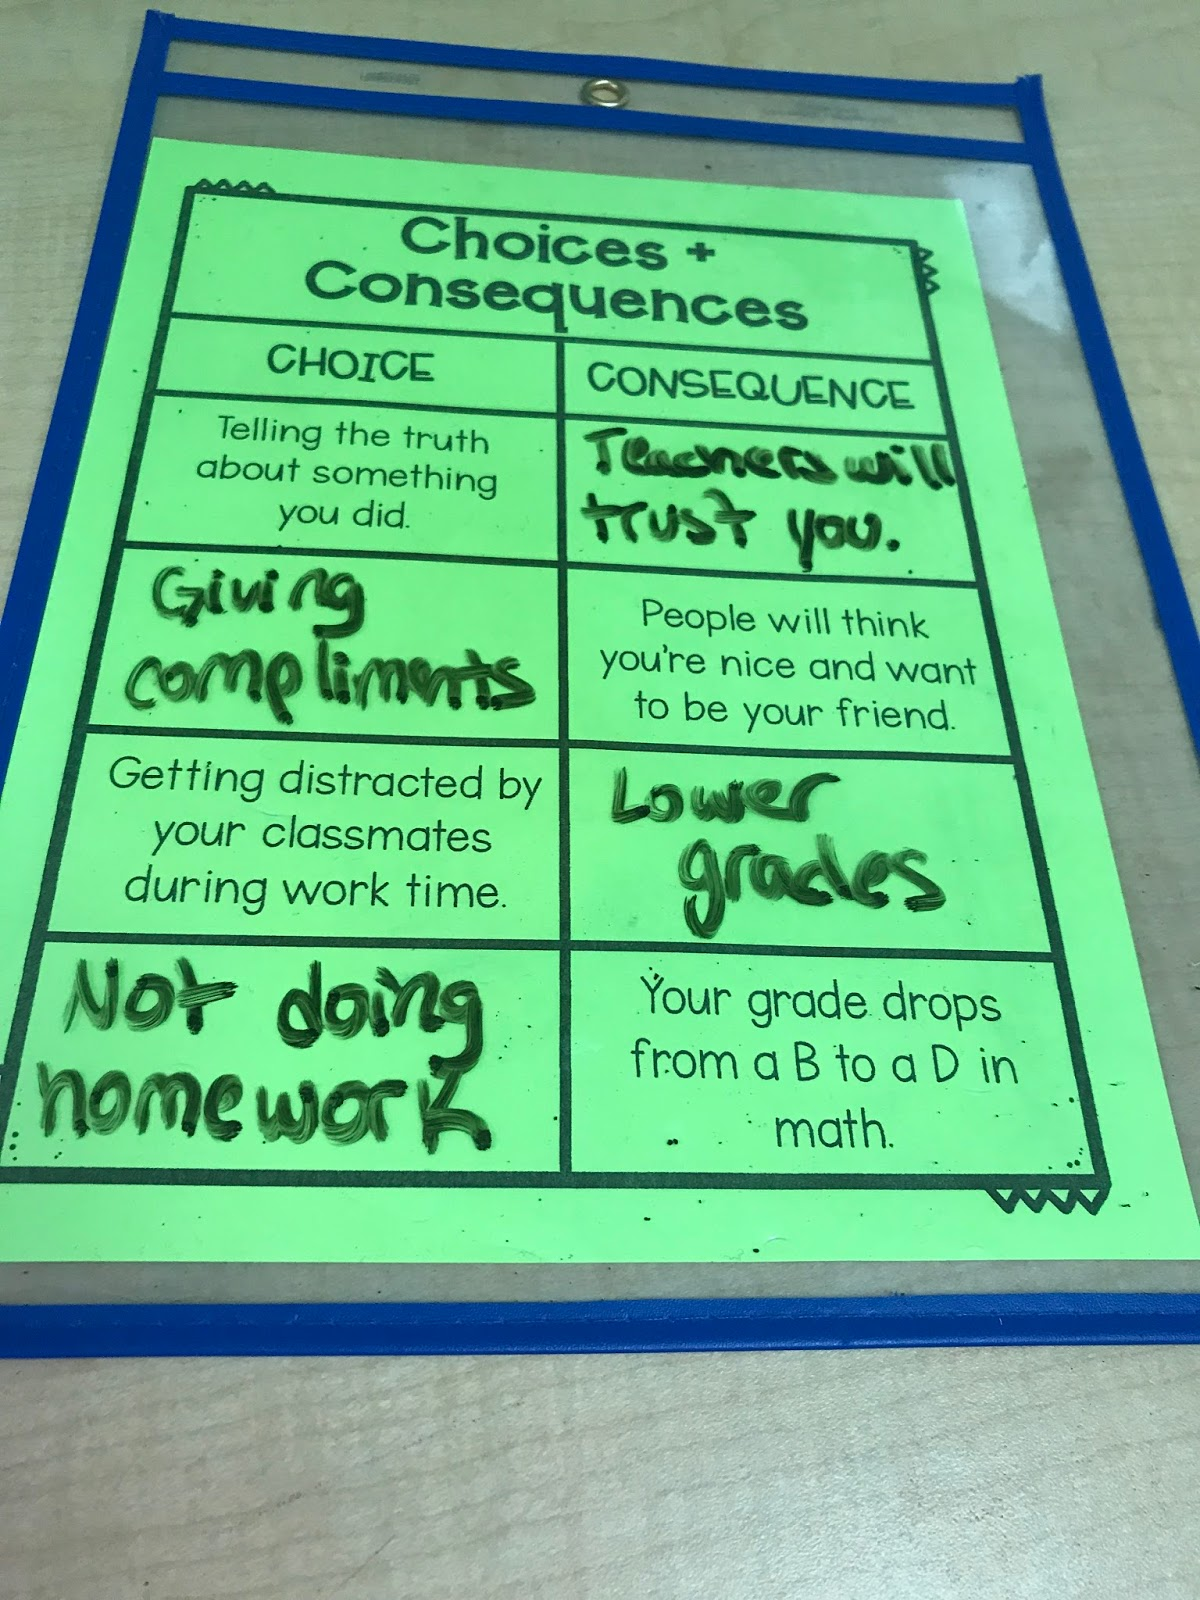 hight resolution of Choices and Consequences Lesson - The Responsive Counselor